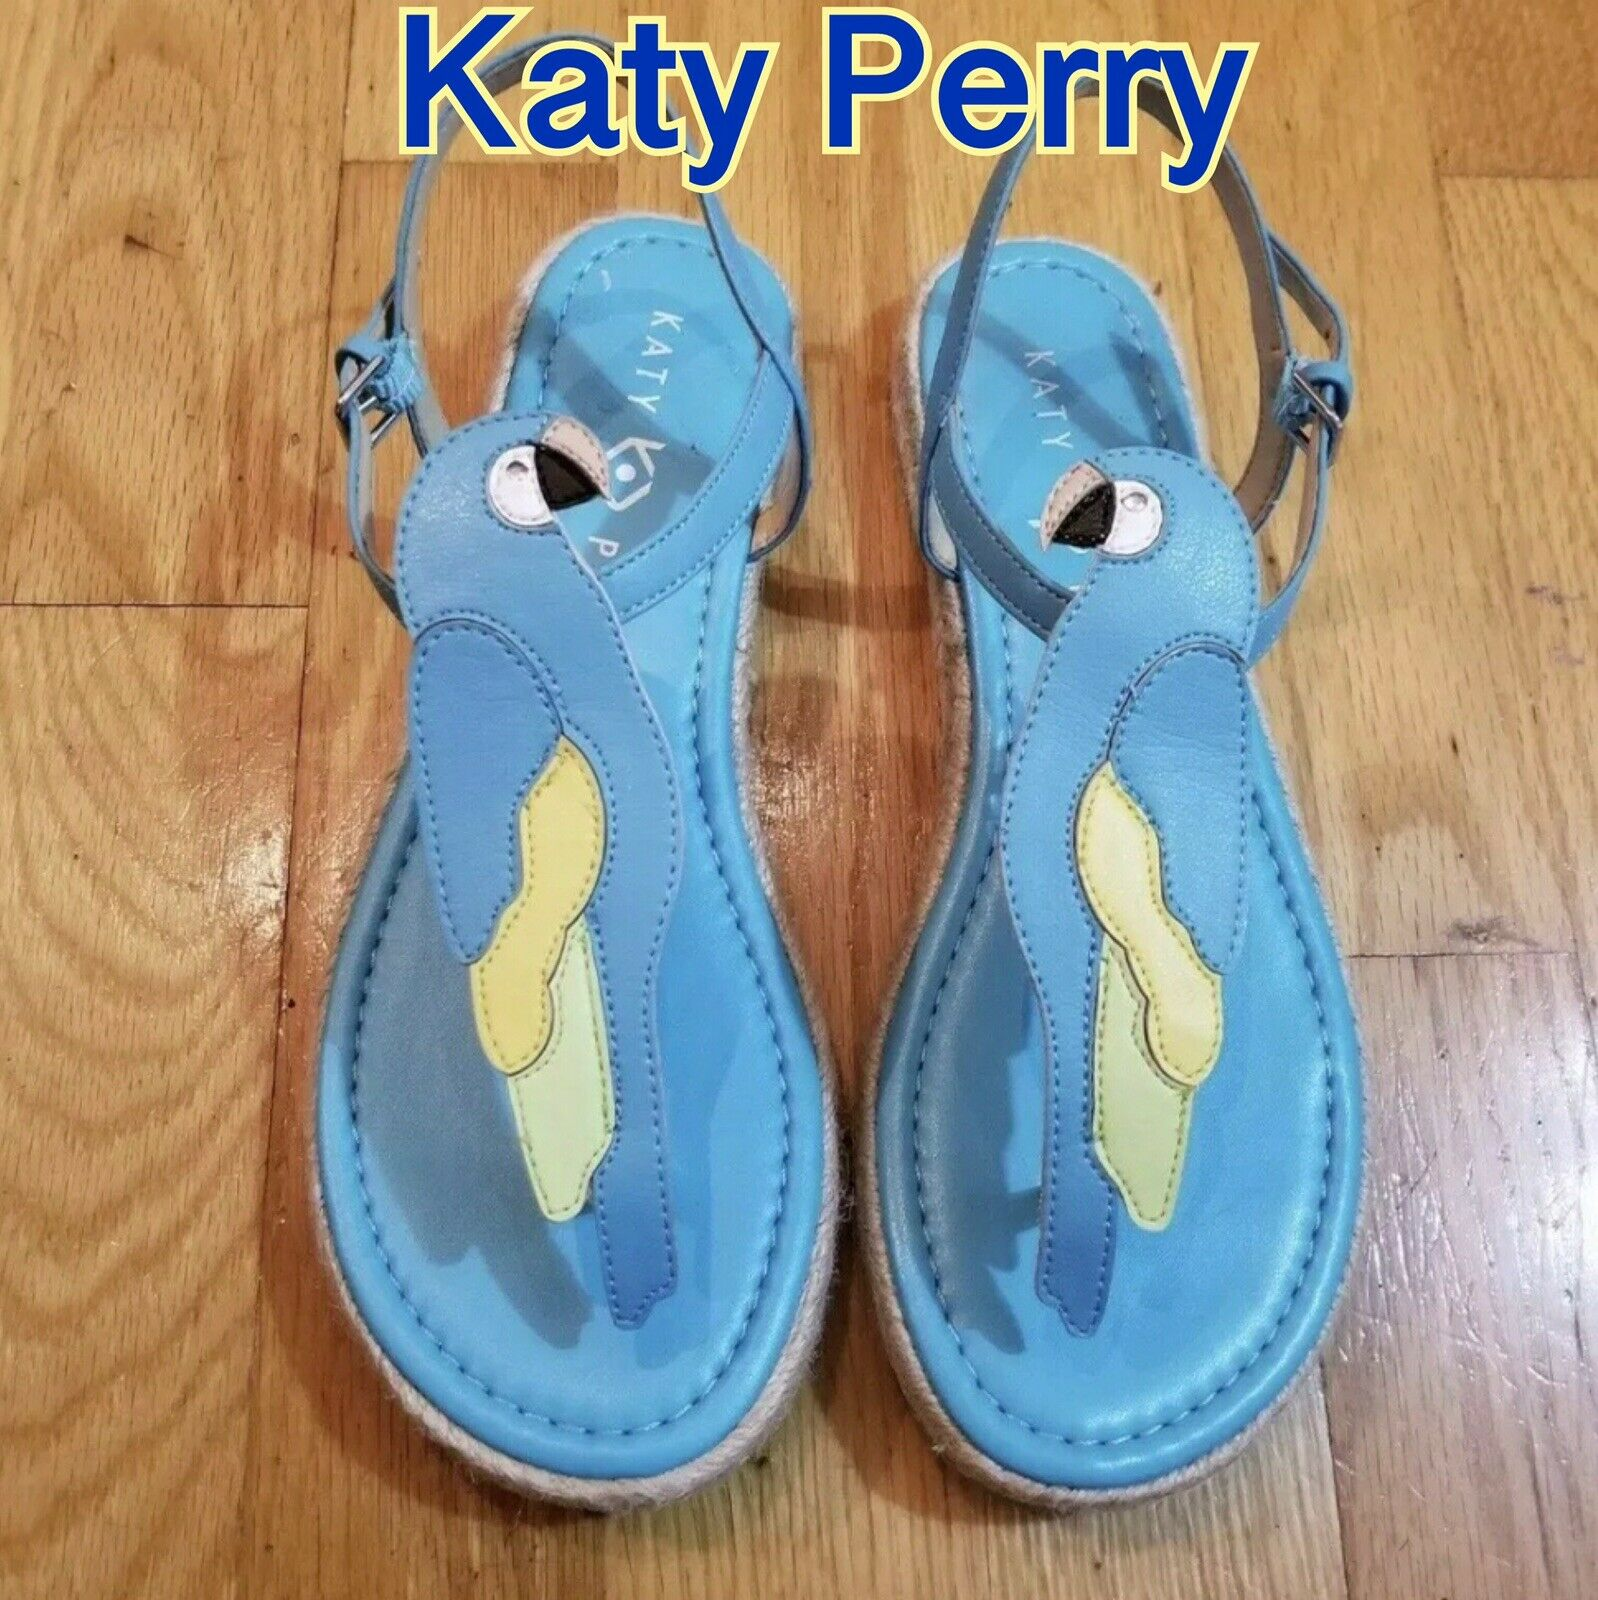 Size 8.5 New KATY PERRY Polly Parred Flat Espadrille Sandals